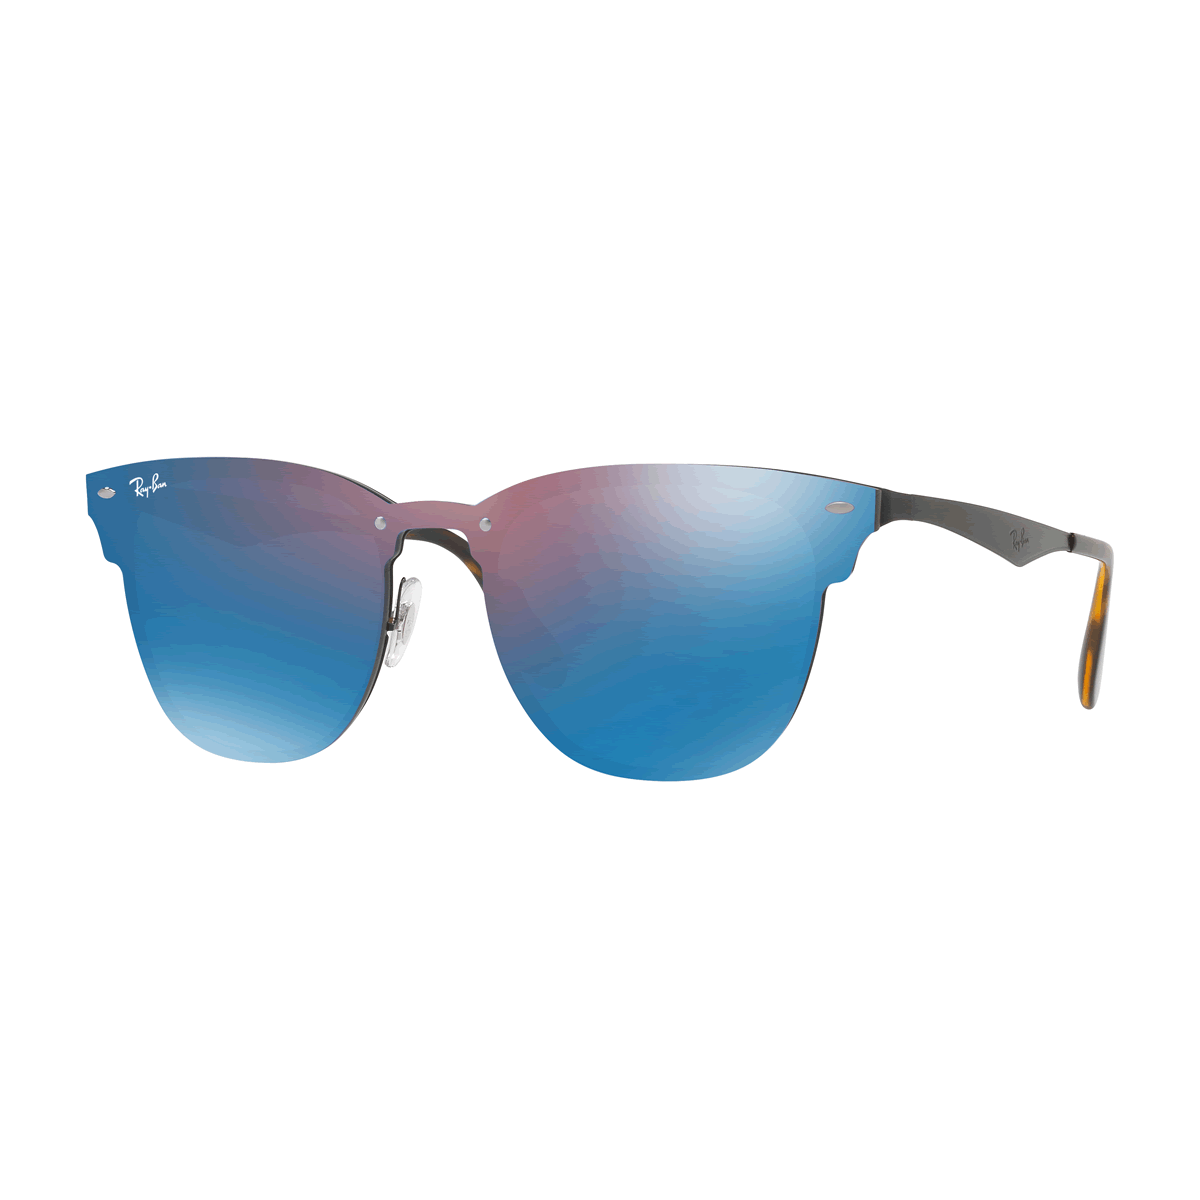 Ray-Ban Sunglasses - Mens   Womens Ray-Bans - Macy s 0333e42e0e